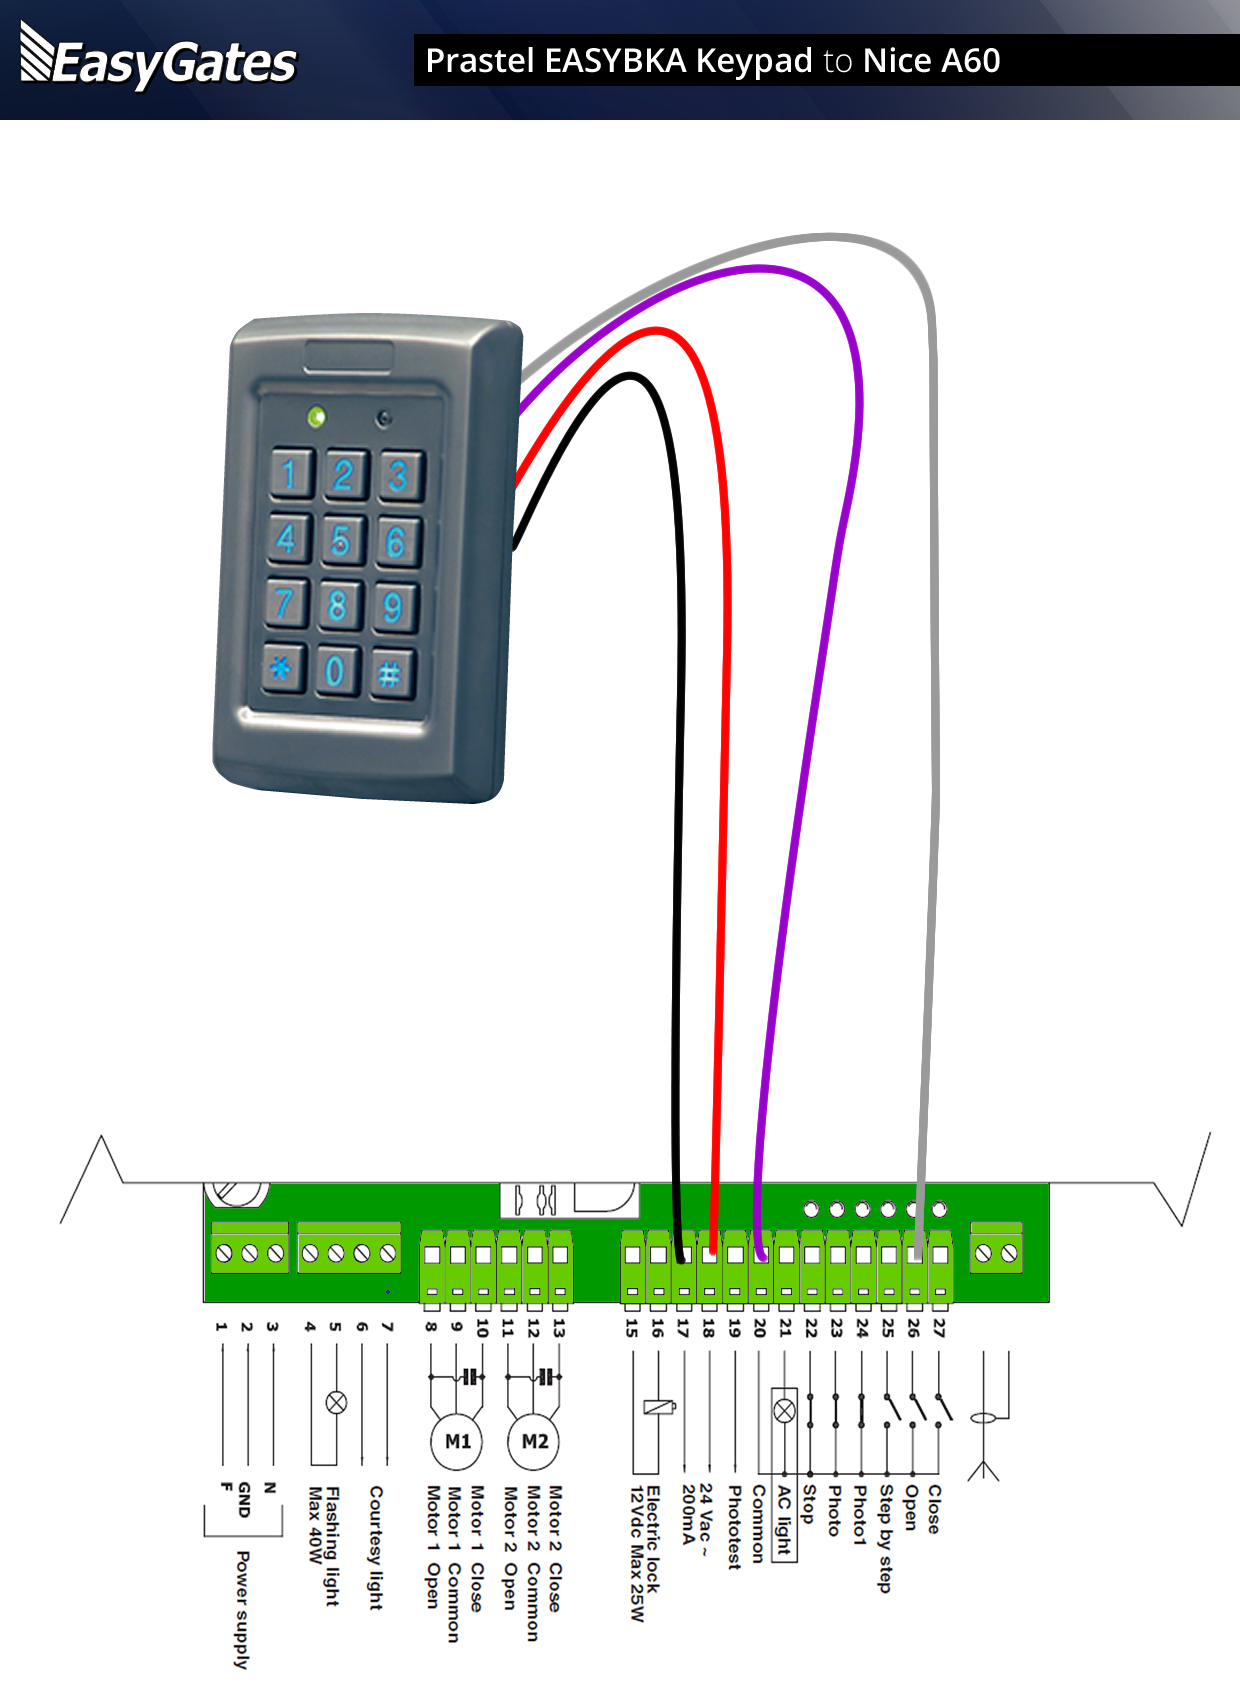 Gate photocell wiring diagram free download wiring diagram prastel easybka keypad to nice a60 control panel gate photocell wiring diagram 41 9 volt photocell wiring diagram outdoor photocell wiring cheapraybanclubmaster Gallery